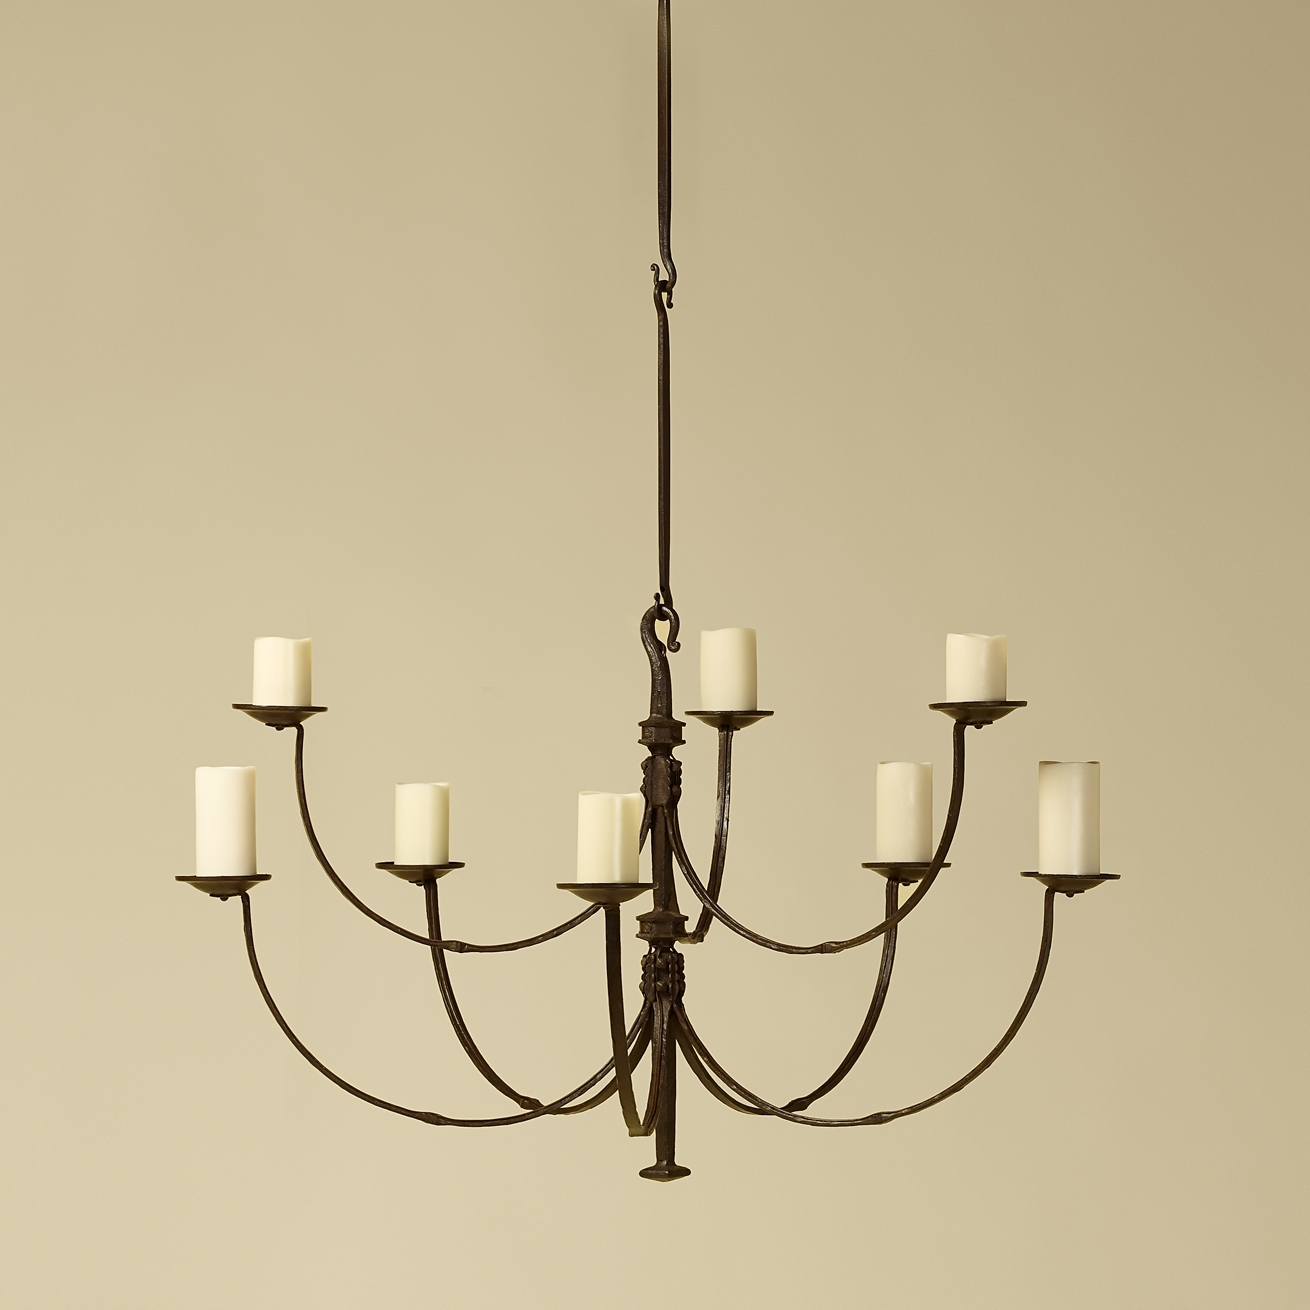 Fashionable Iron Chandelier Regarding Rose Tarlow Iron Chandelier – Such Graceful Lines On This Chandelier (View 4 of 15)